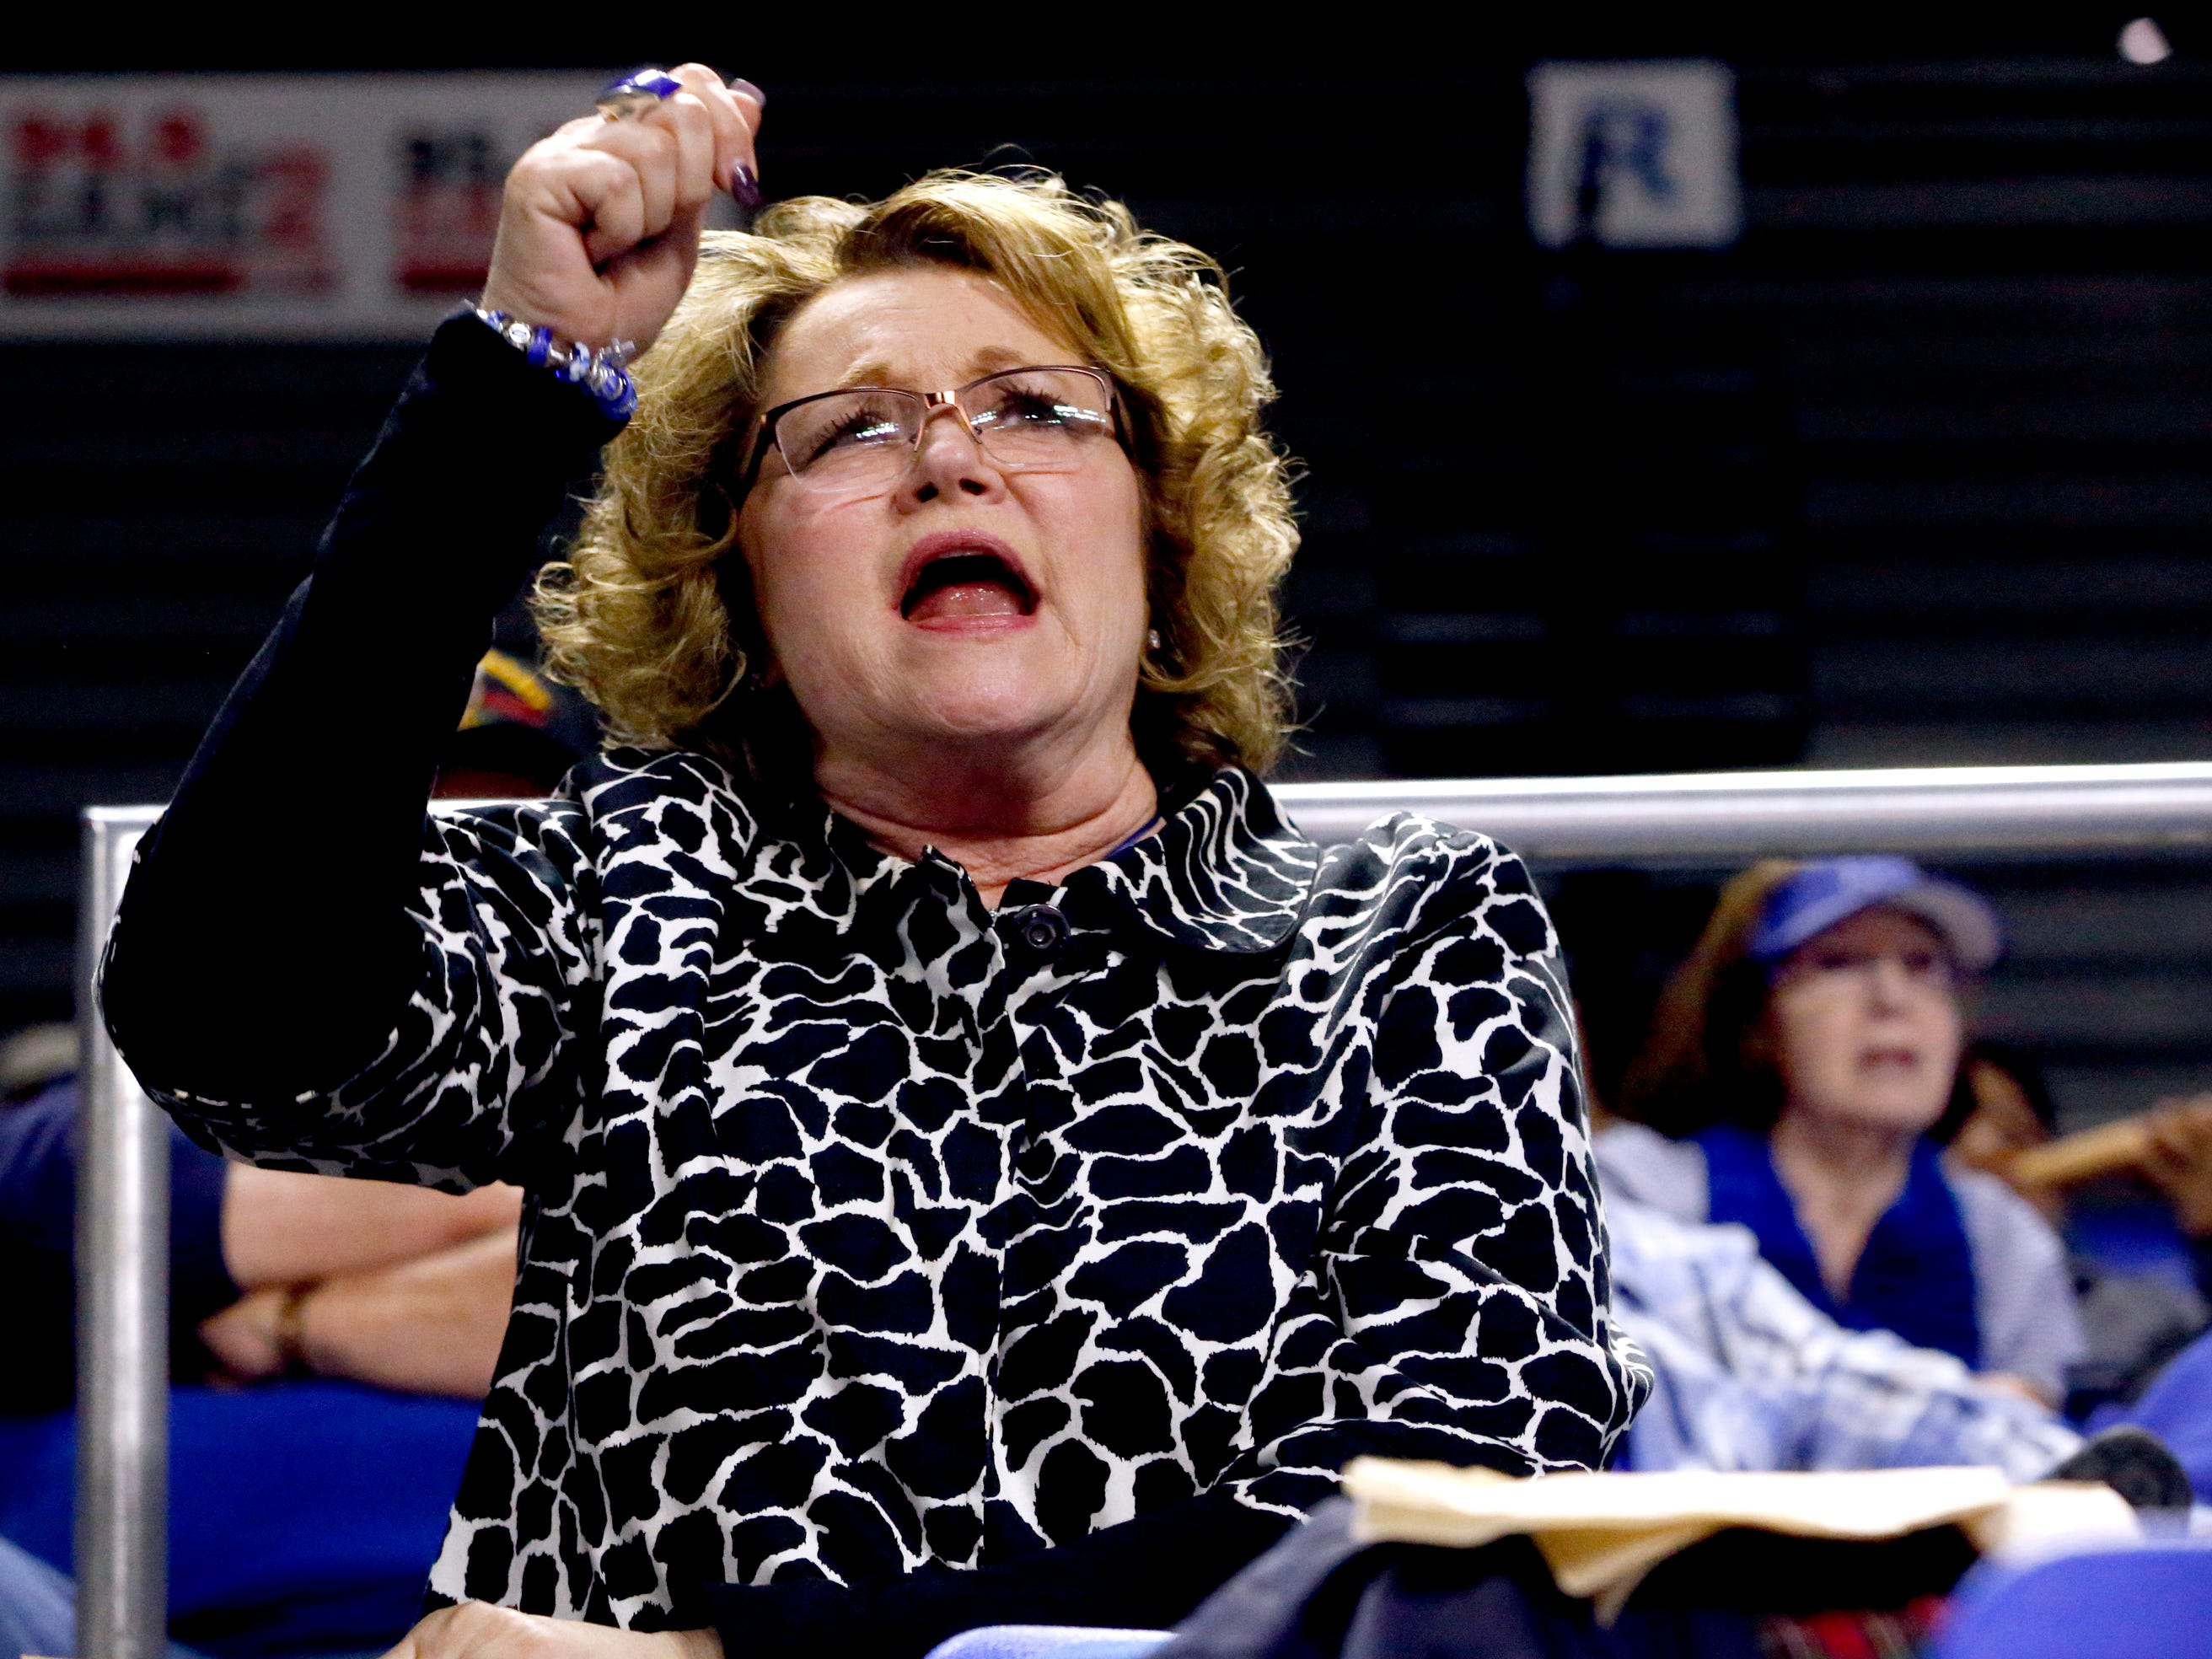 Deb Insell, the wife of MTSU's head coach Rick Insell, cheers MTSU women on from the stands on Thursday, Feb. 14, 2019, during the game against Western.